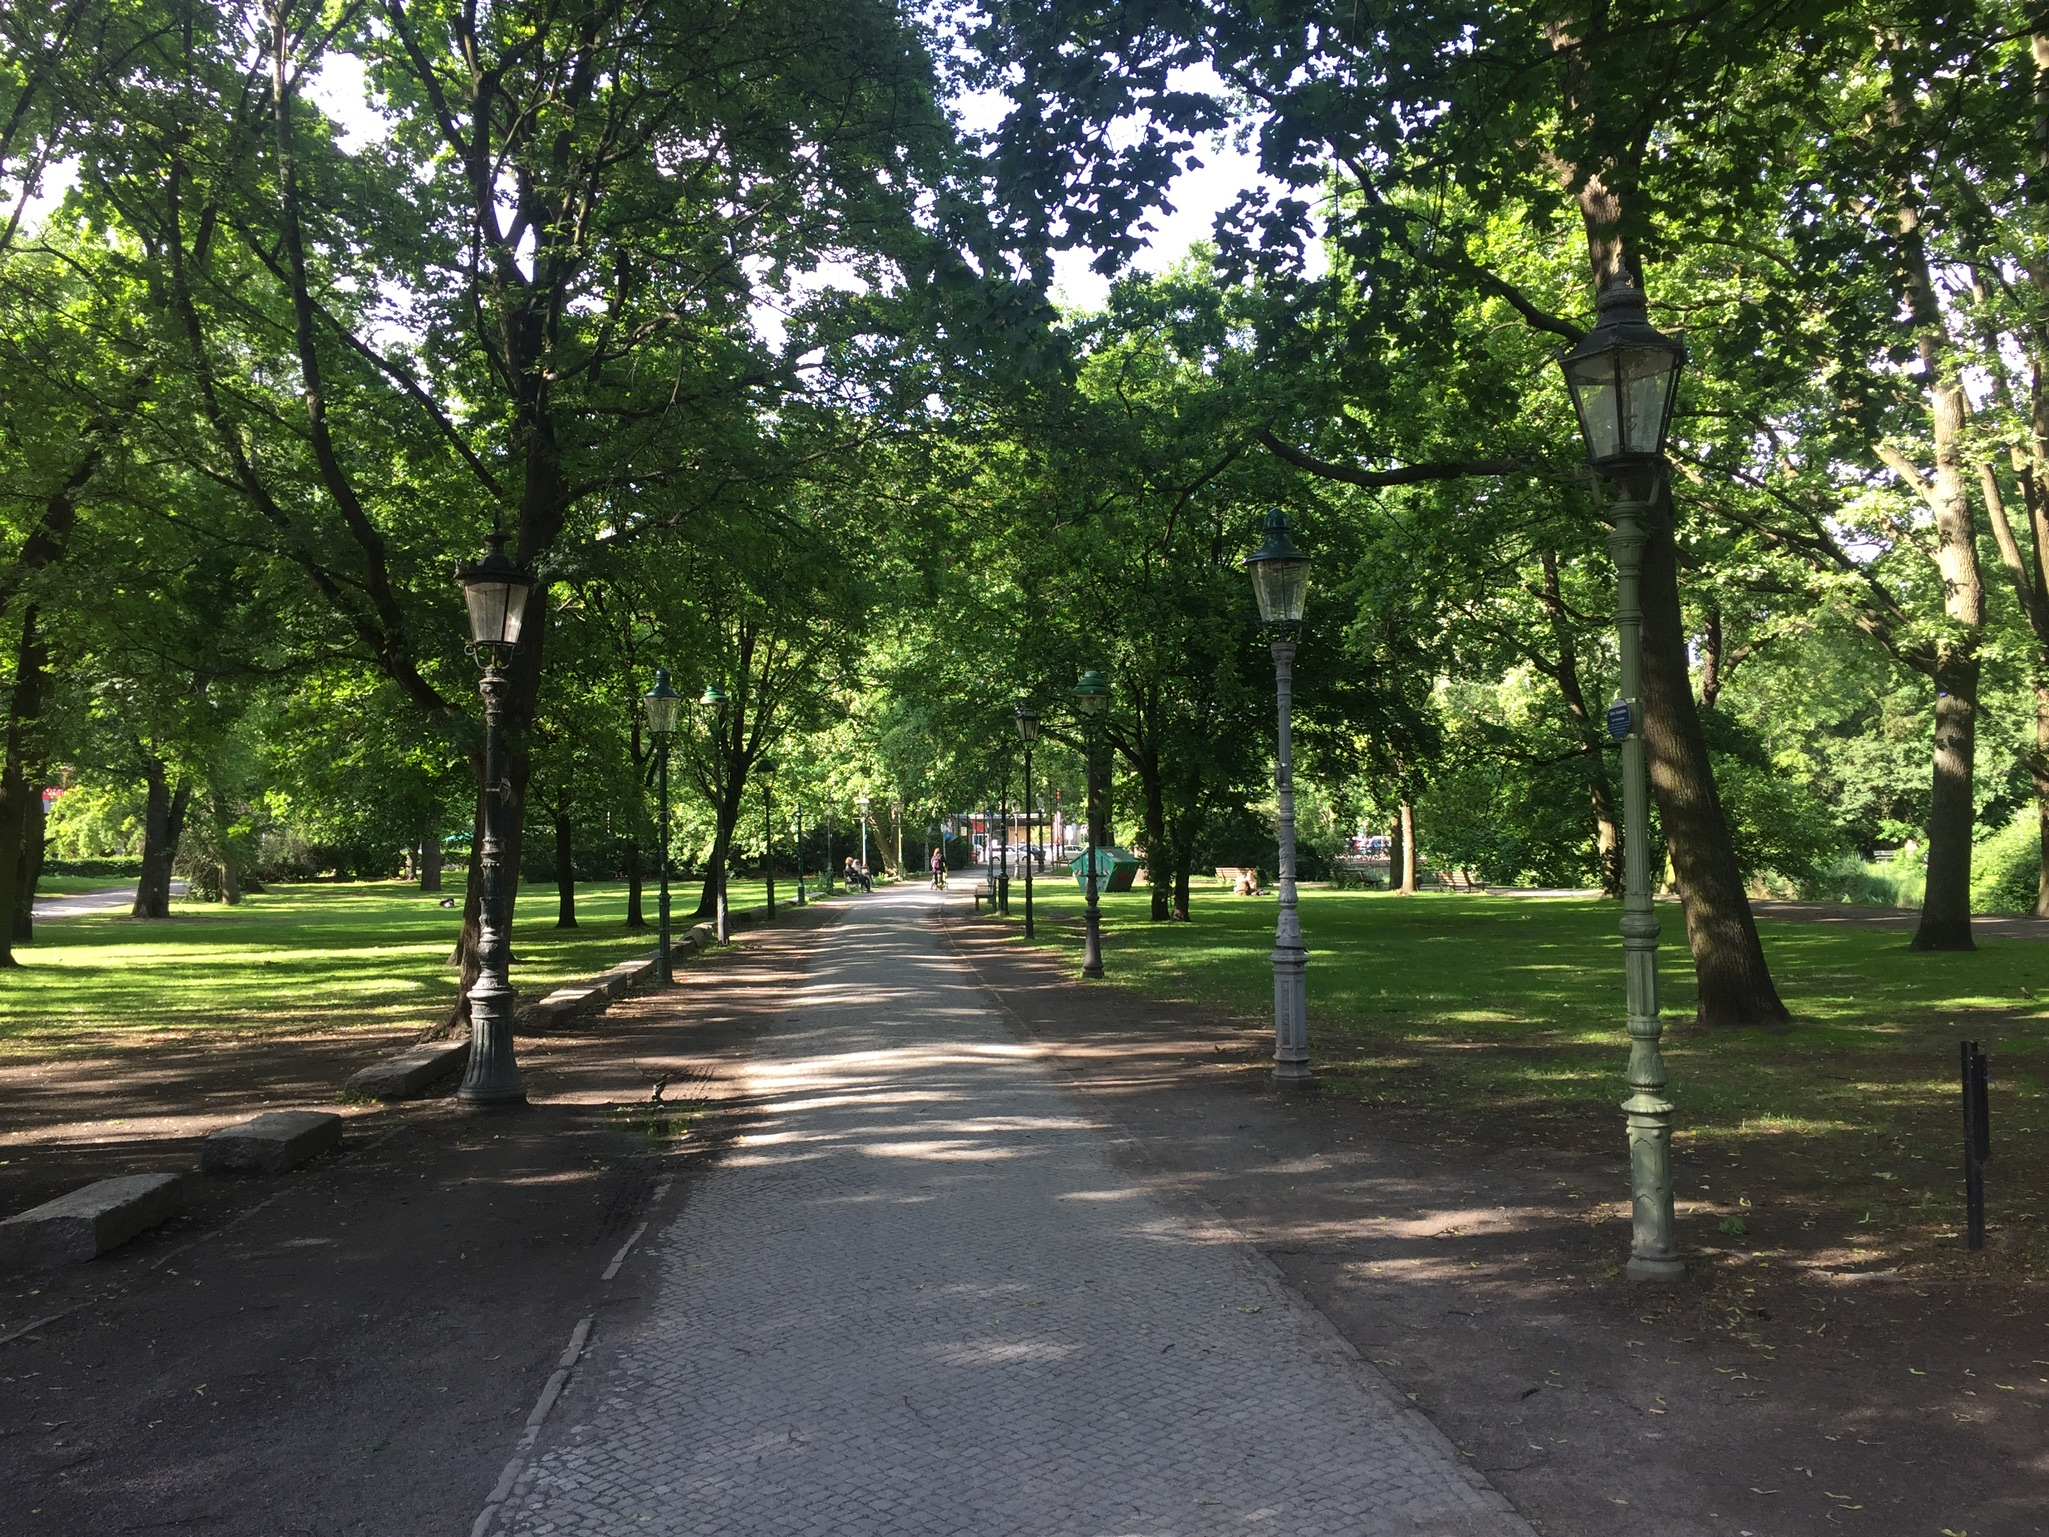 Berlin biking and walking route – Kreuzberg to Tiergarten